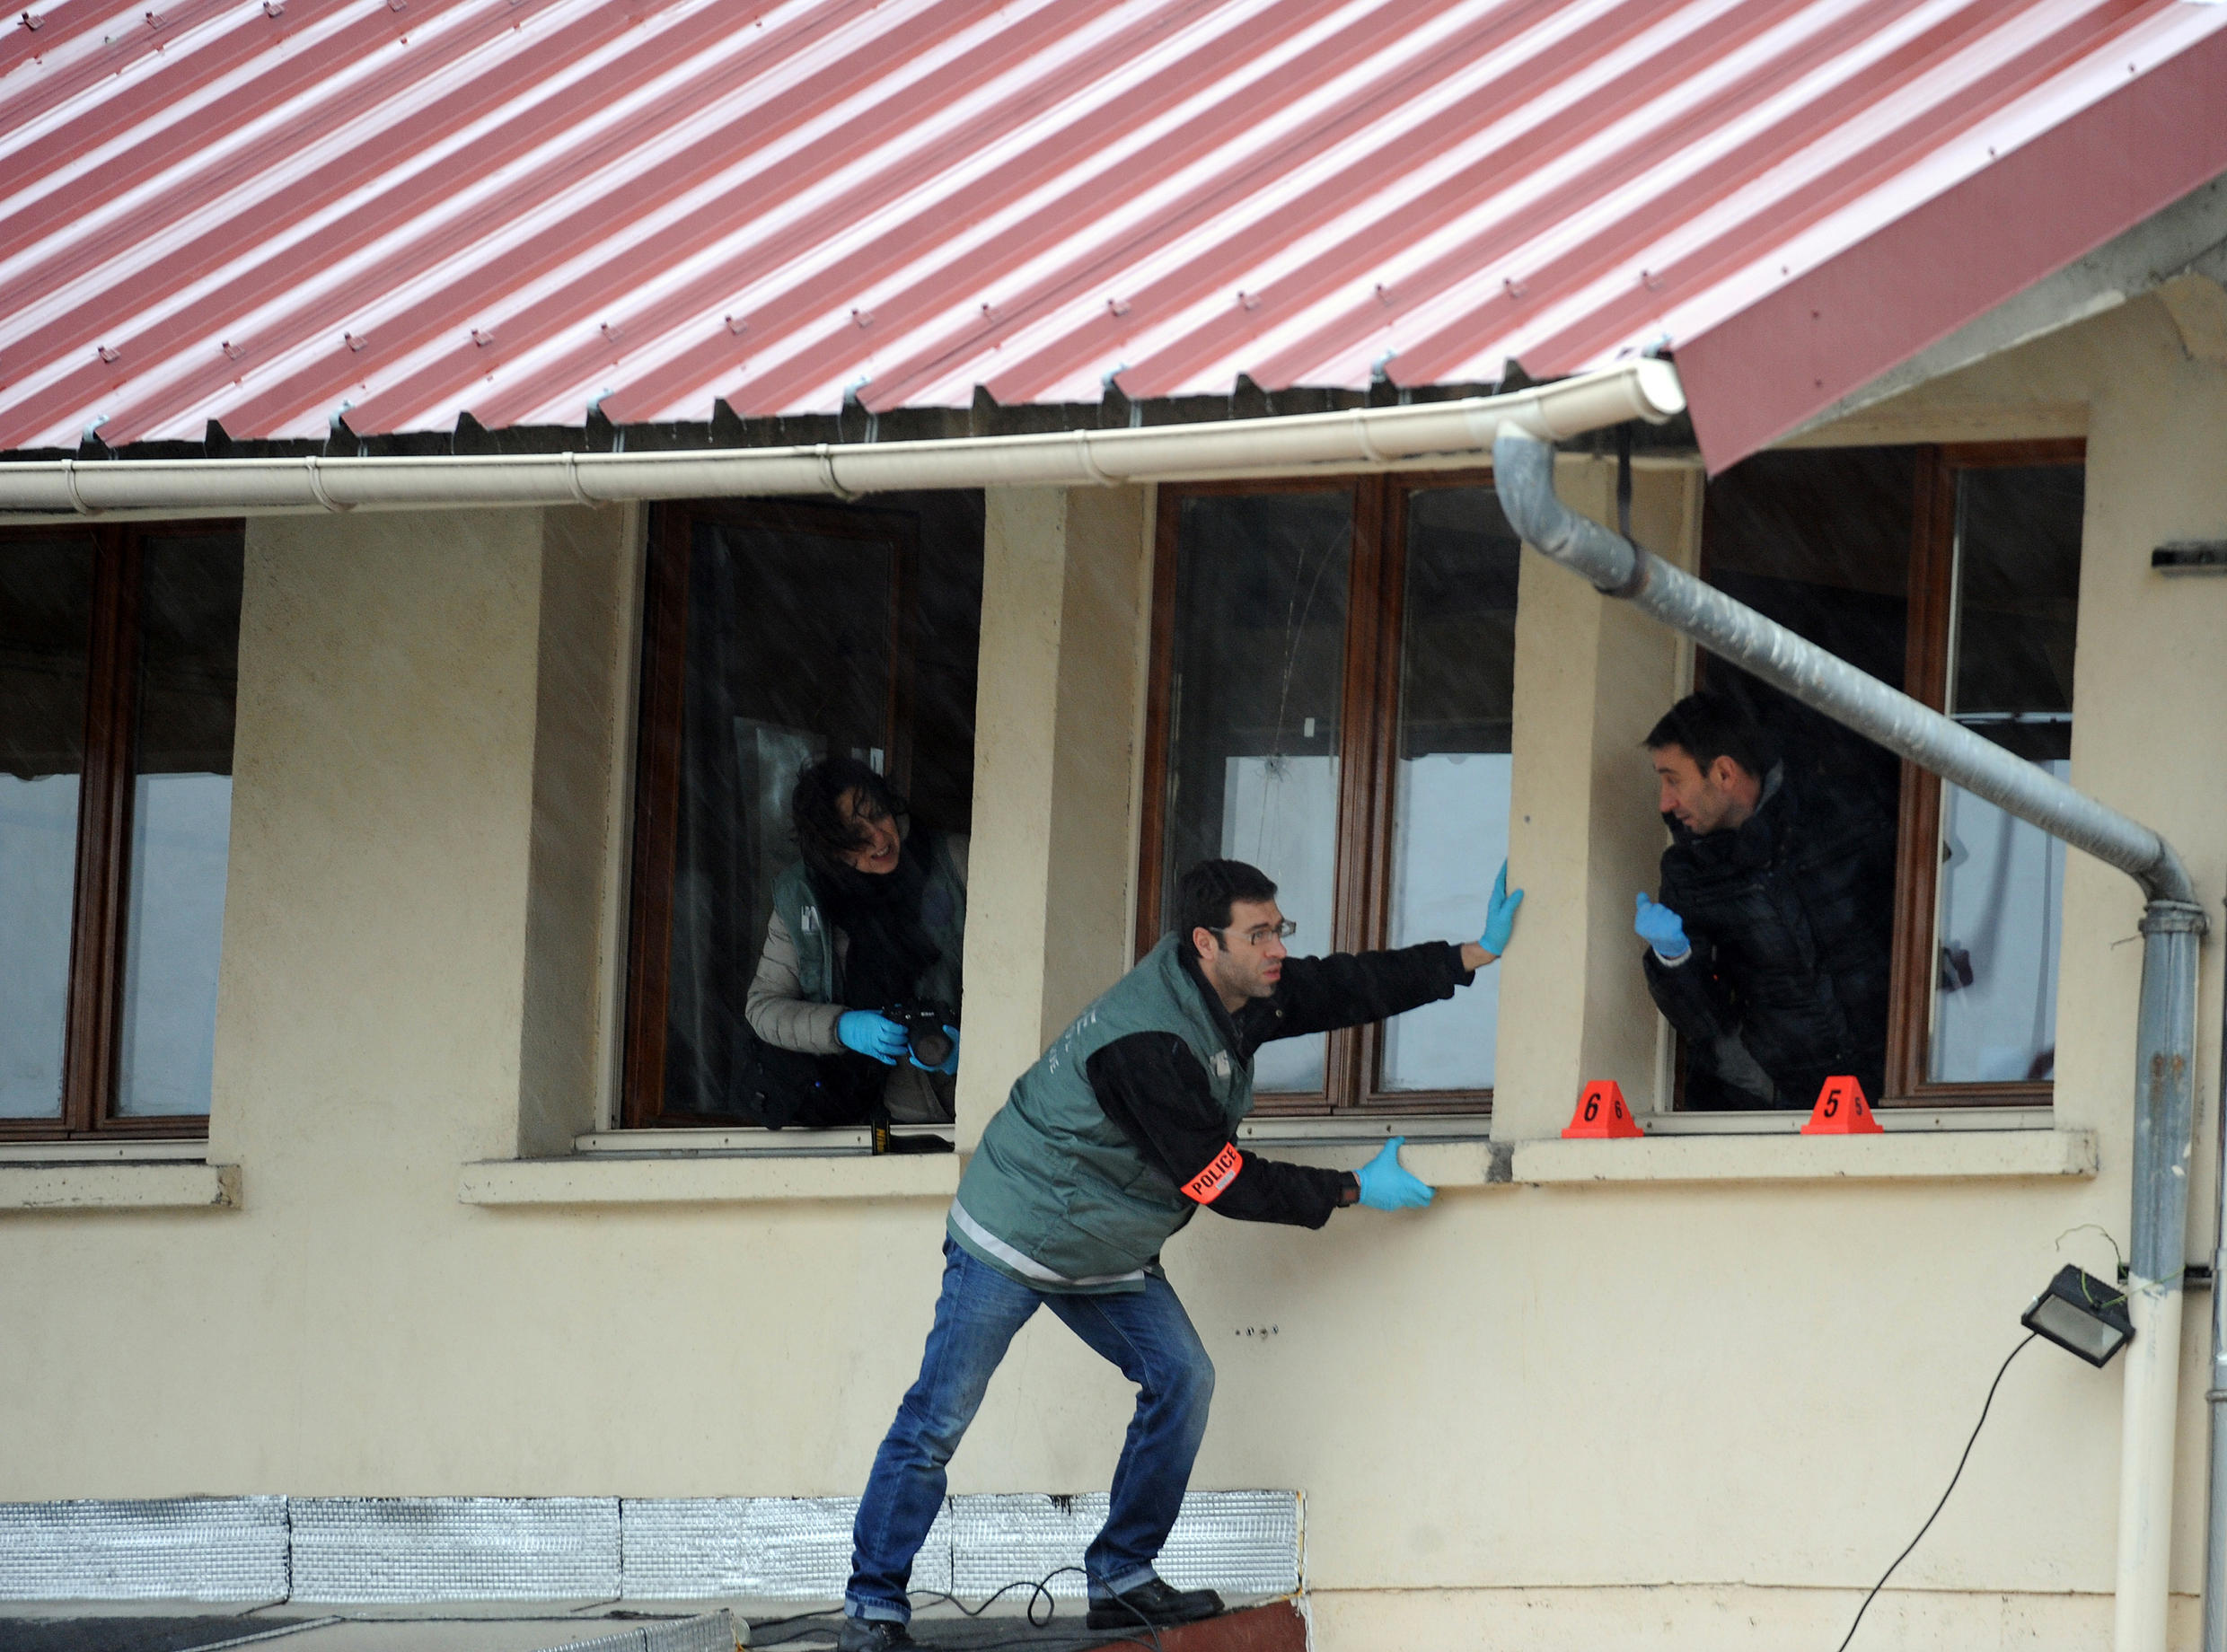 Forensic police examine the scene of an attack on a mosque in Le Mans the day after the murders at Charlie Hebdo's offices